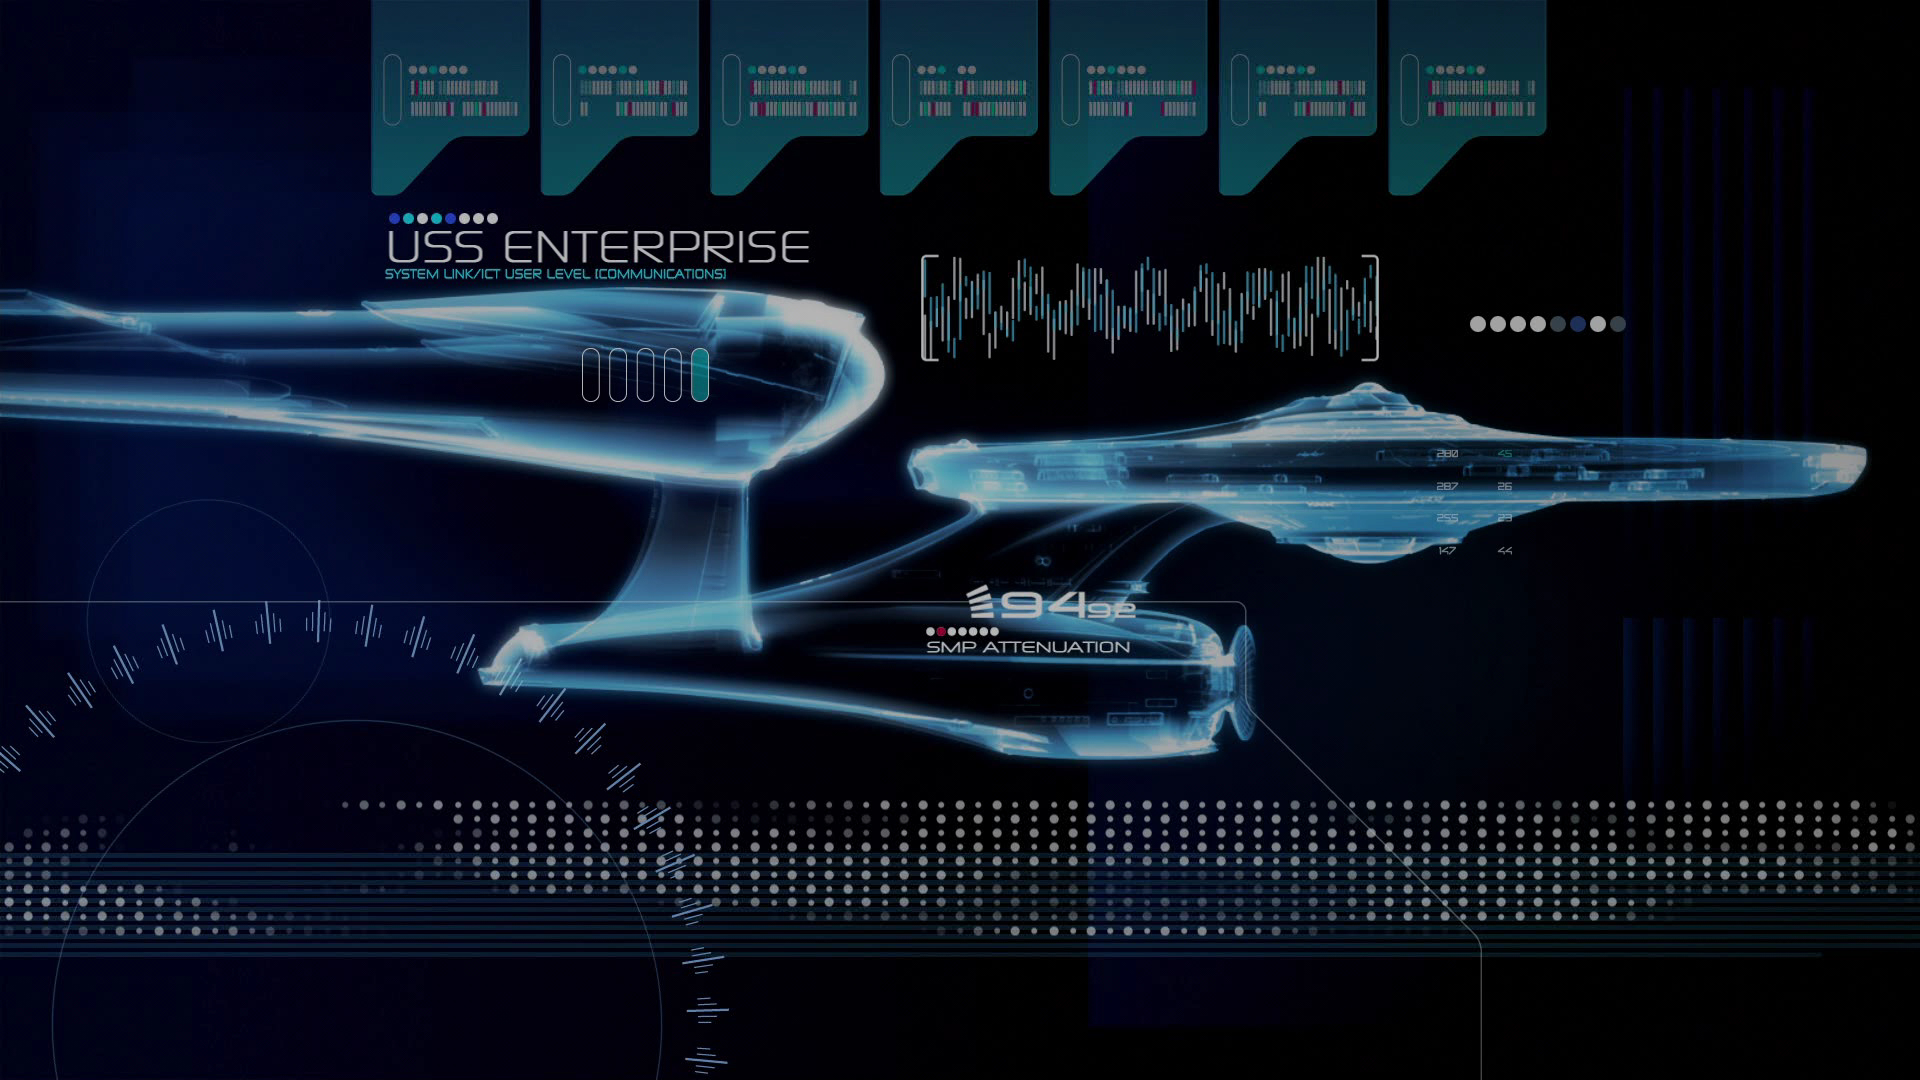 enterprise e wallpaper hd - photo #38